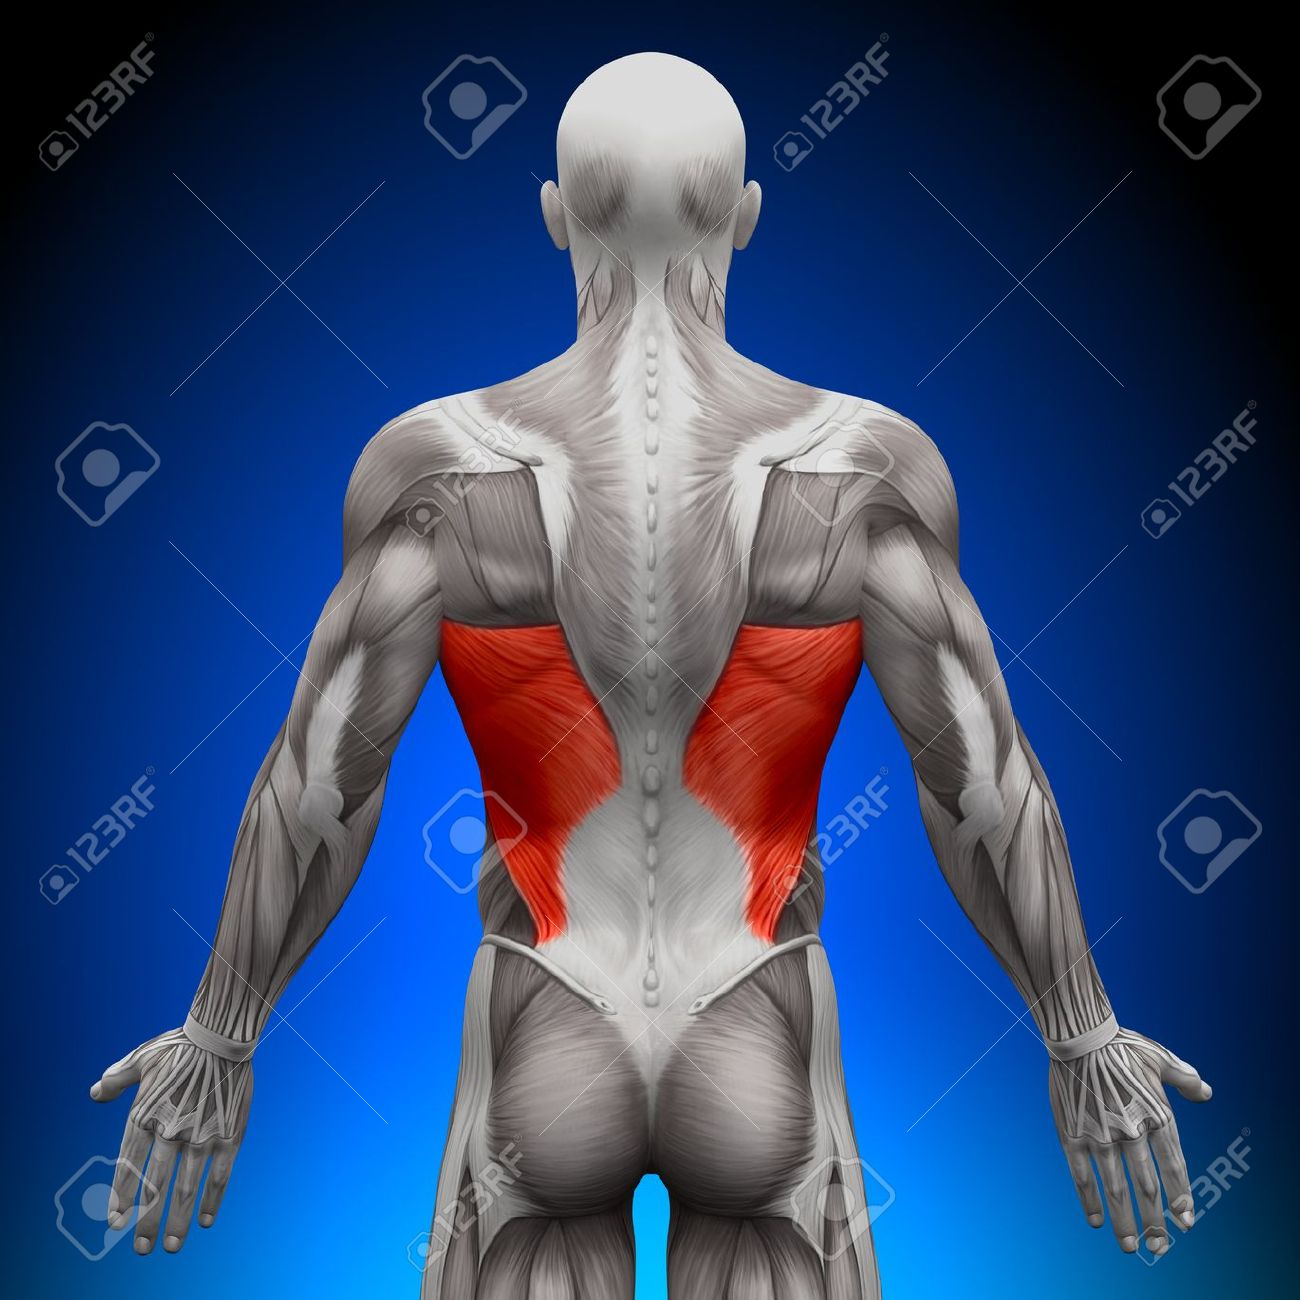 Latissimus Dorsi Anatomy Muscles Stock Photo, Picture And Royalty ...